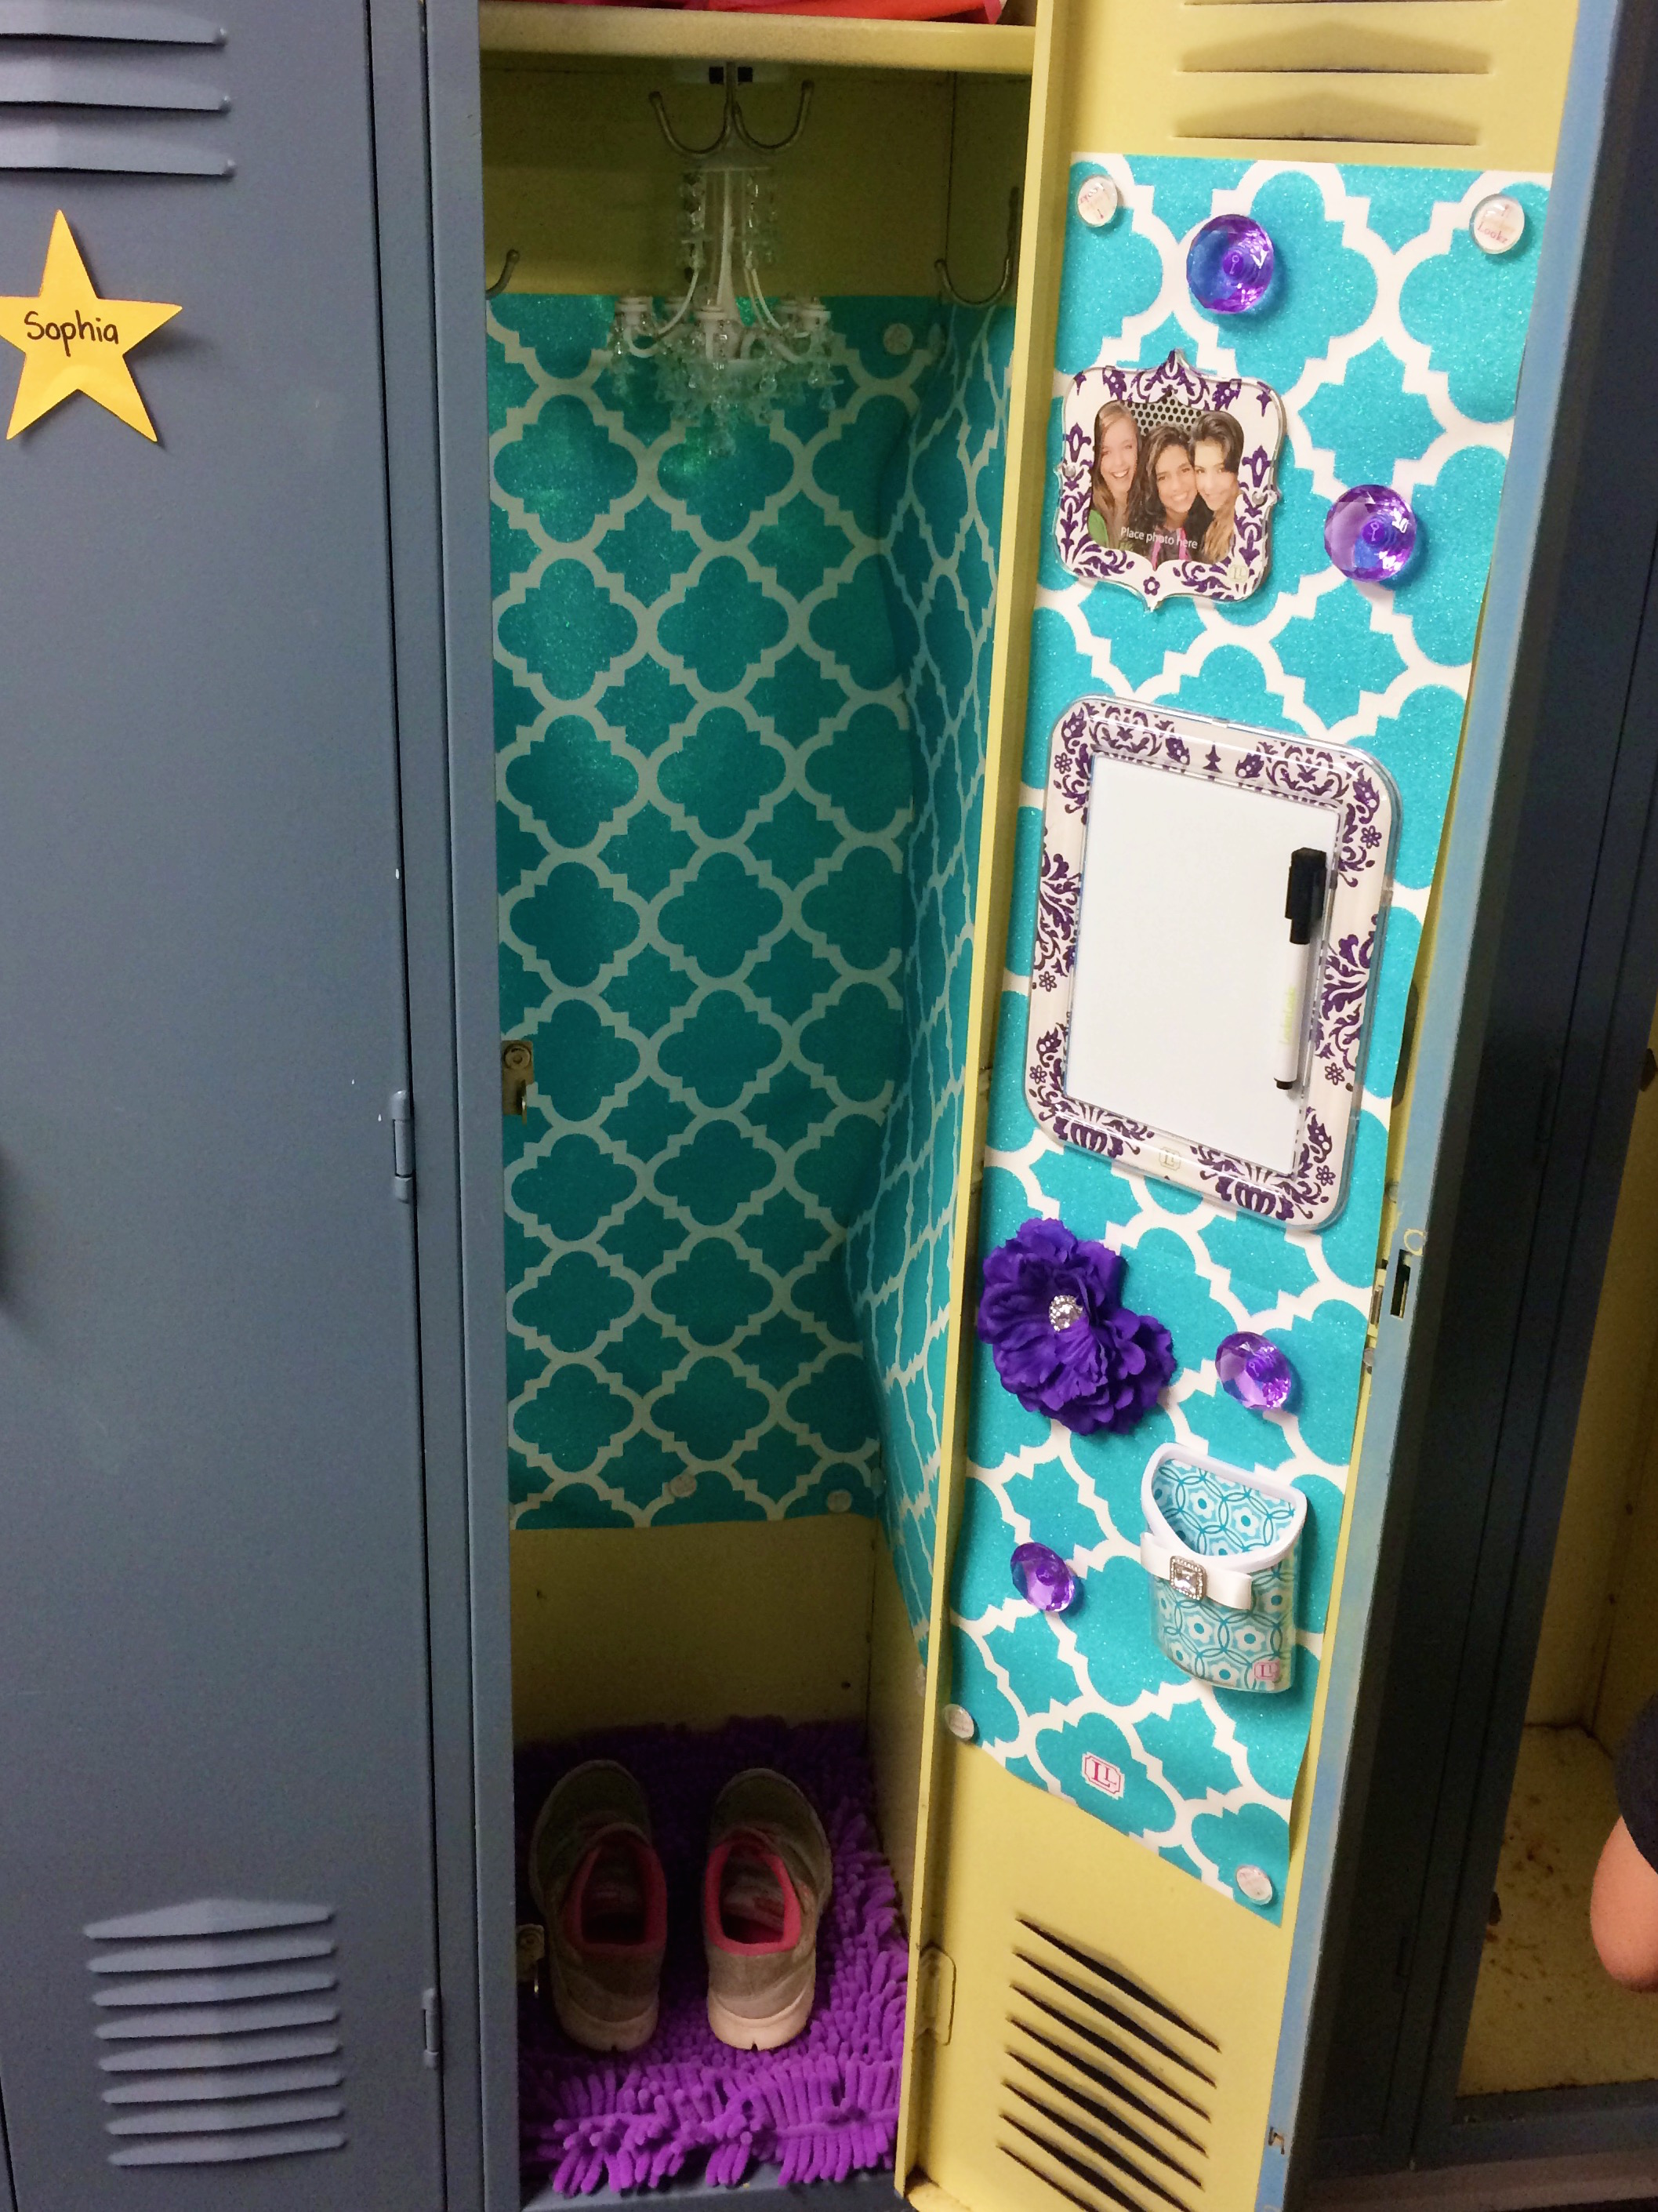 The day my daughter won the locker battle ummmm yes to answer your question that is a real chandelier as in holy crap it actually lights up and omg shes hung up wallpaper on the walls arubaitofo Image collections